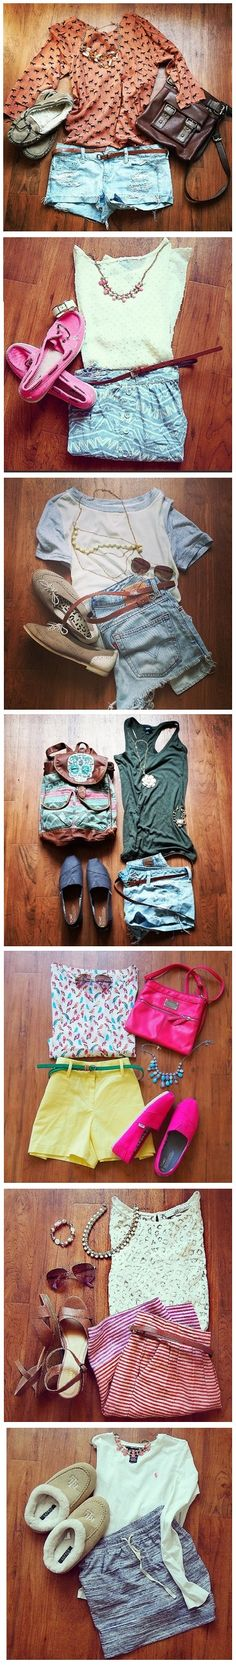 This Week's OOTD ... I could totally do the top outfit with my owl shirt.